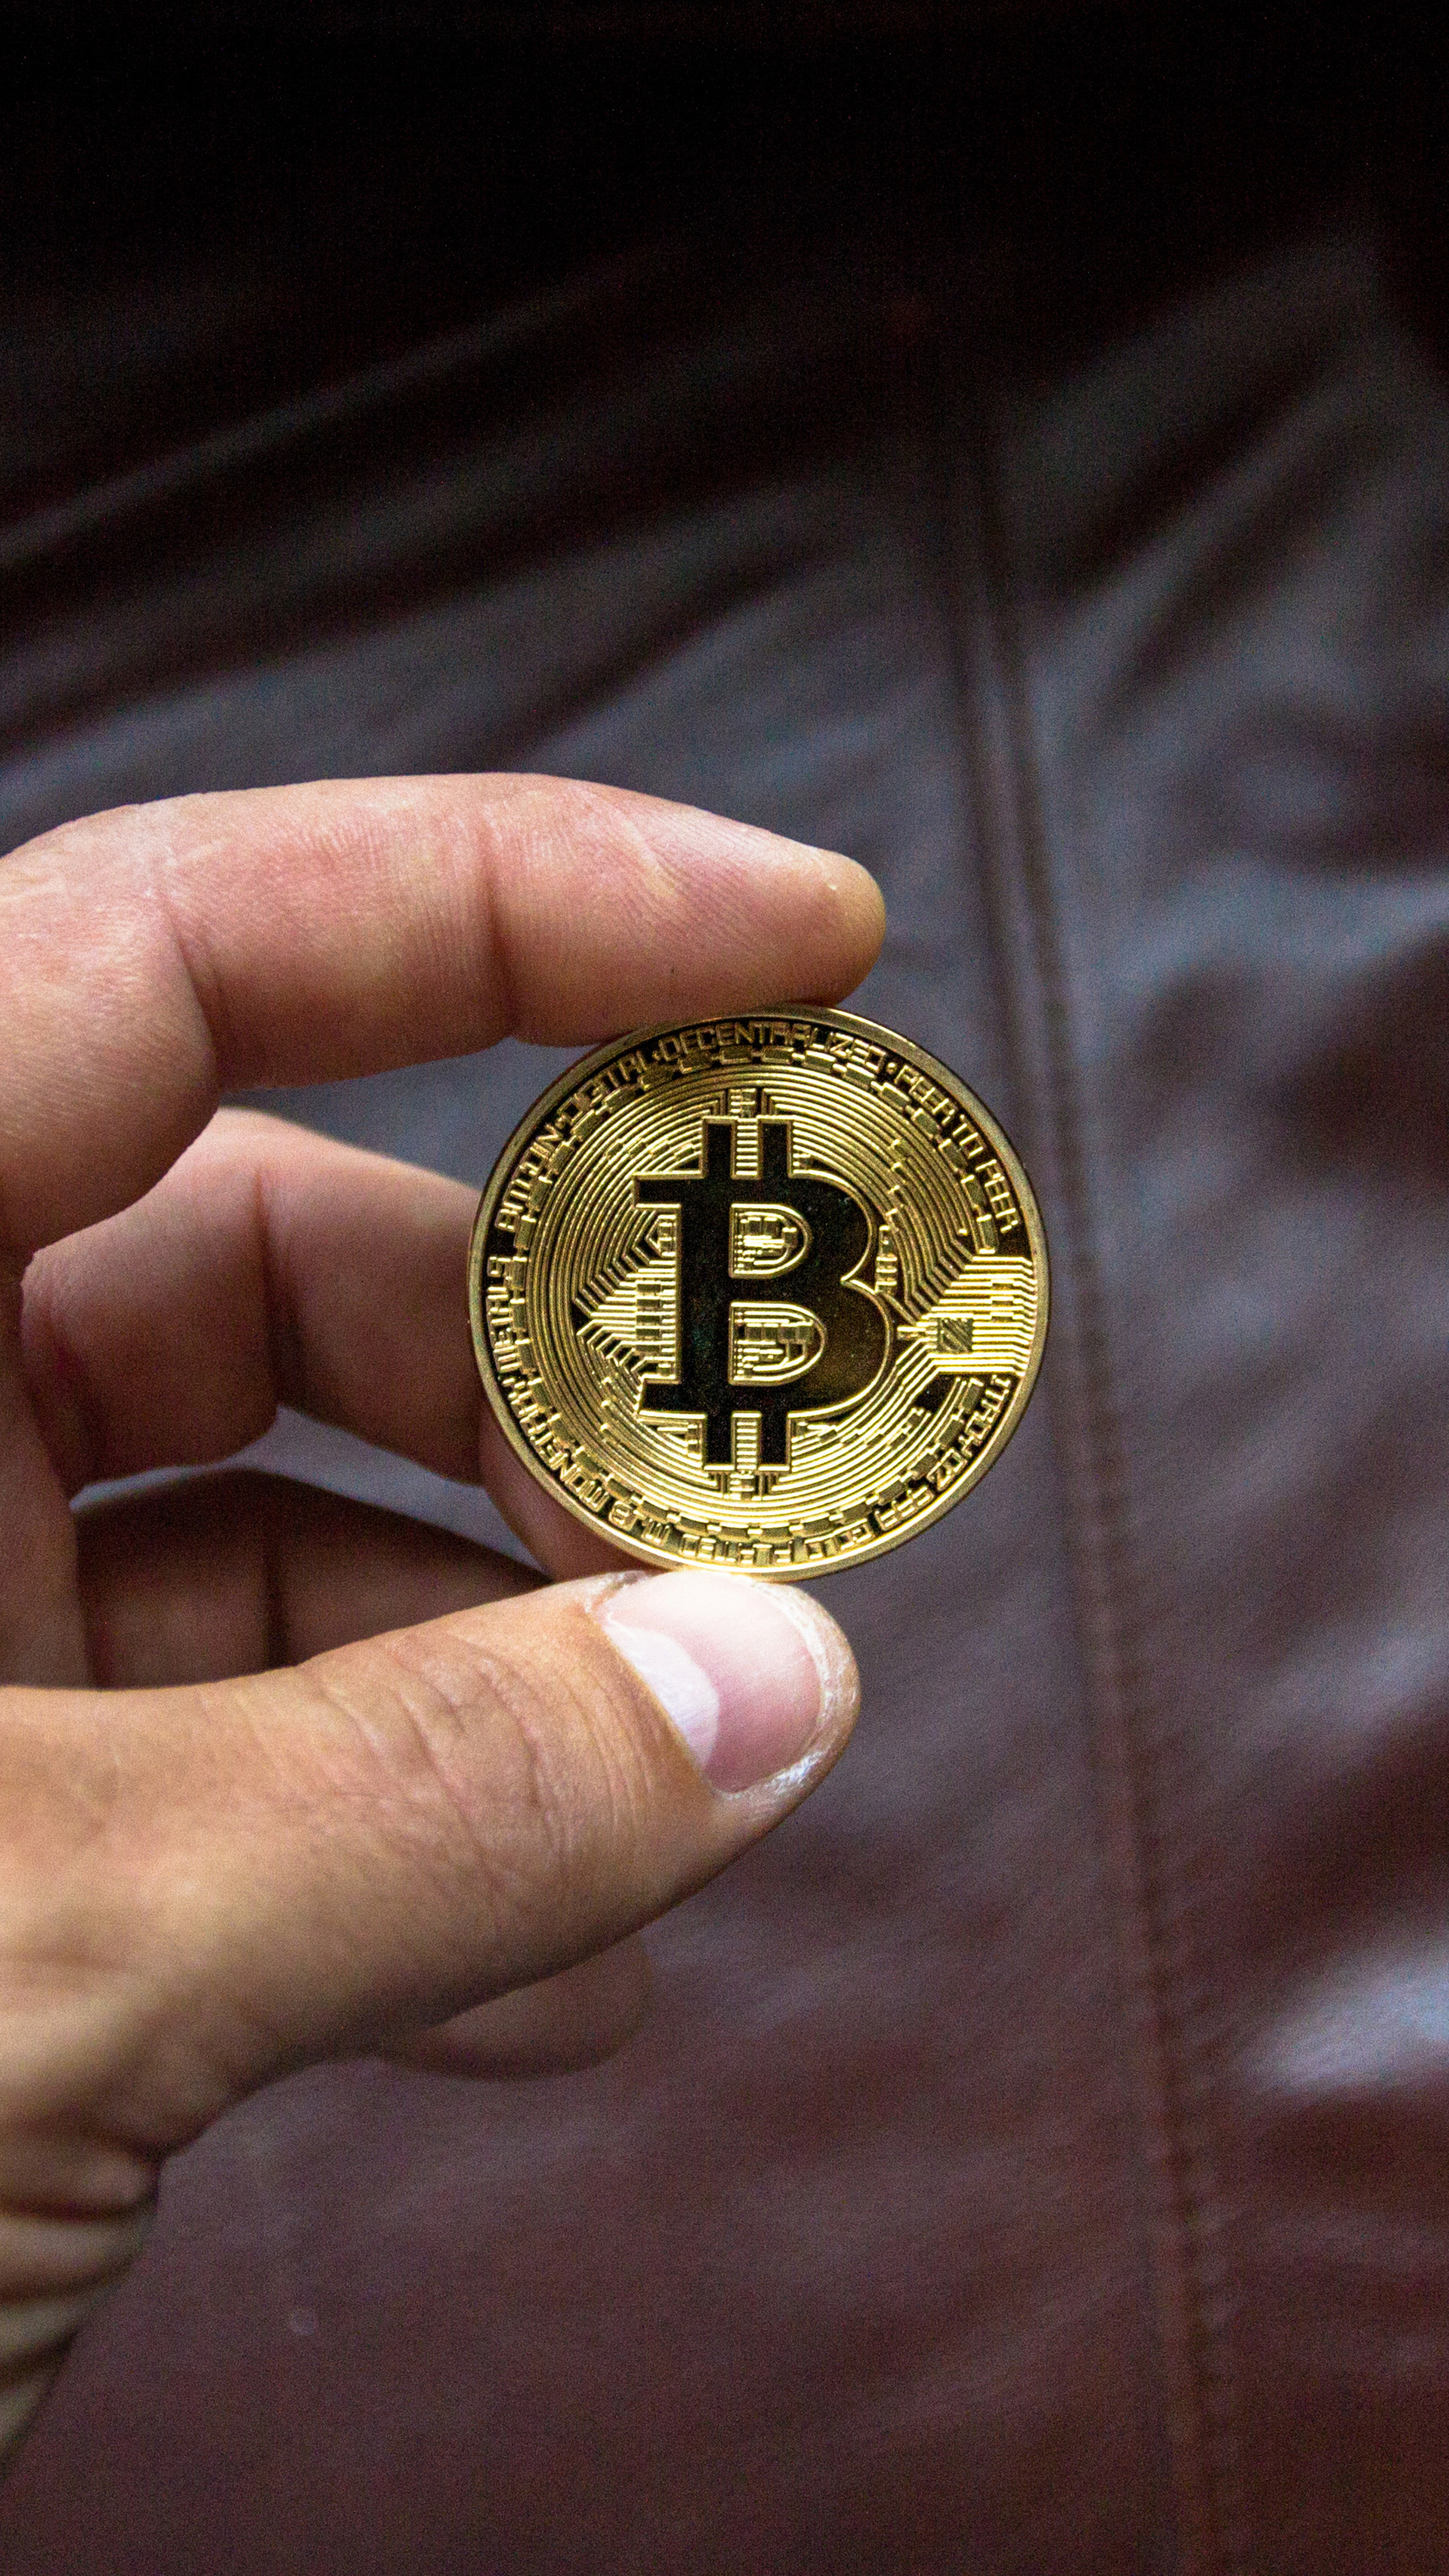 bitcoin-coin-in-person-hand-zw.jpg